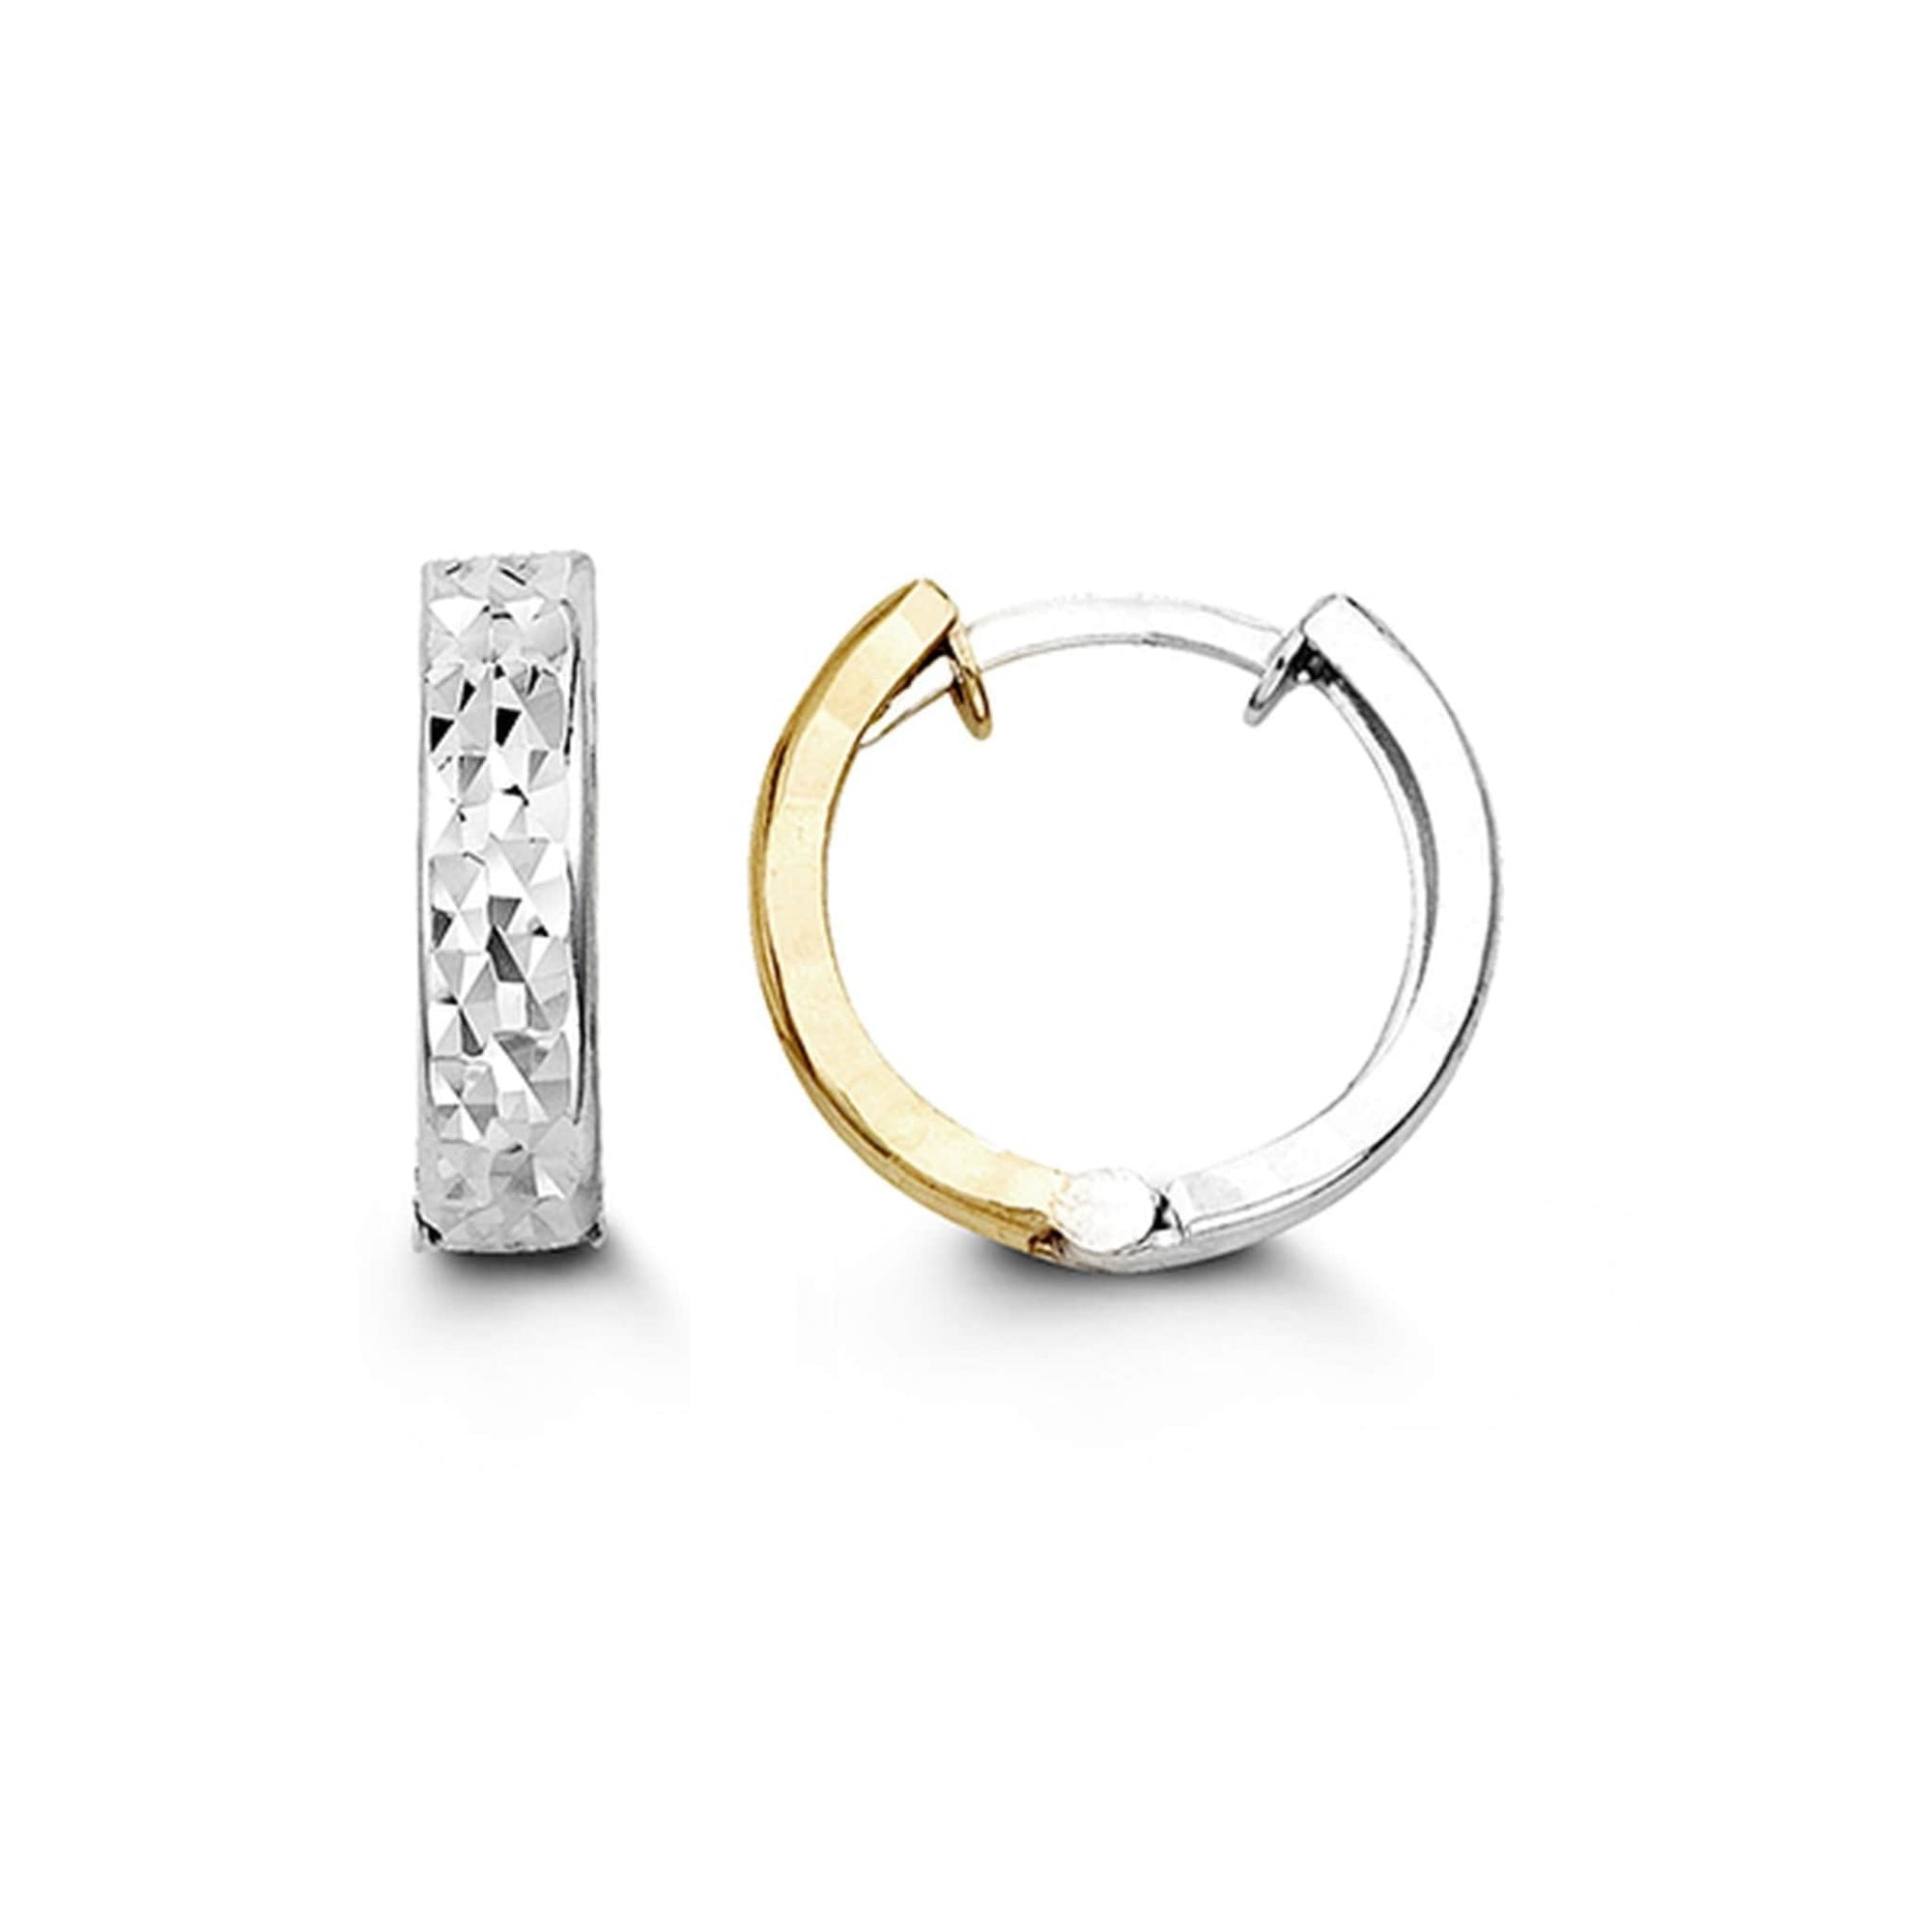 10K Yellow & White Gold Huggie Hoop Earrings at Arman's Jewellers